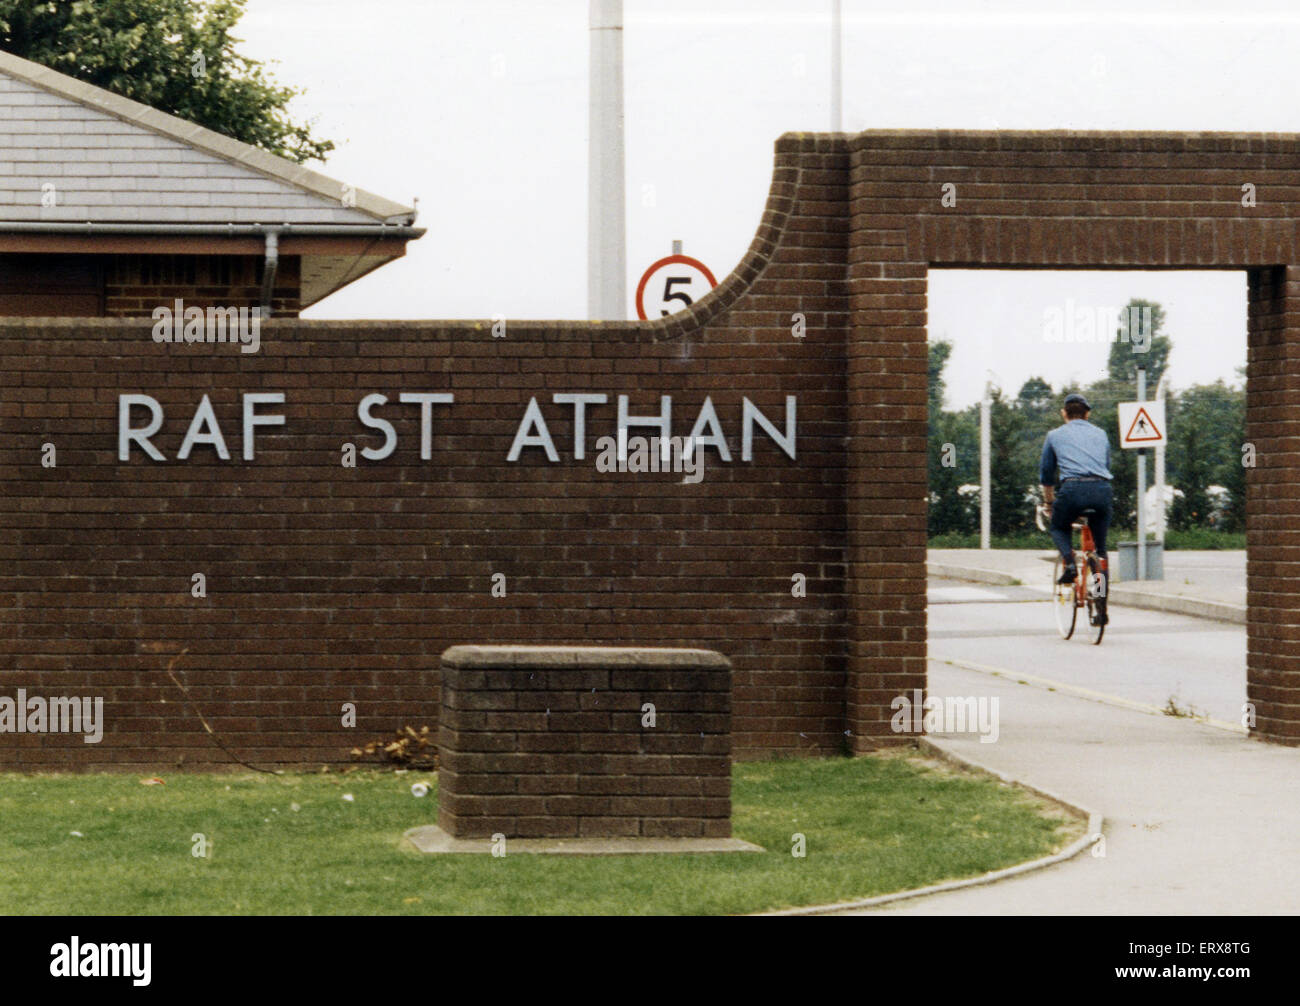 RAF St Athan, in the Vale of Glamorgan, southern Wales. 3rd September 1996. - Stock Image